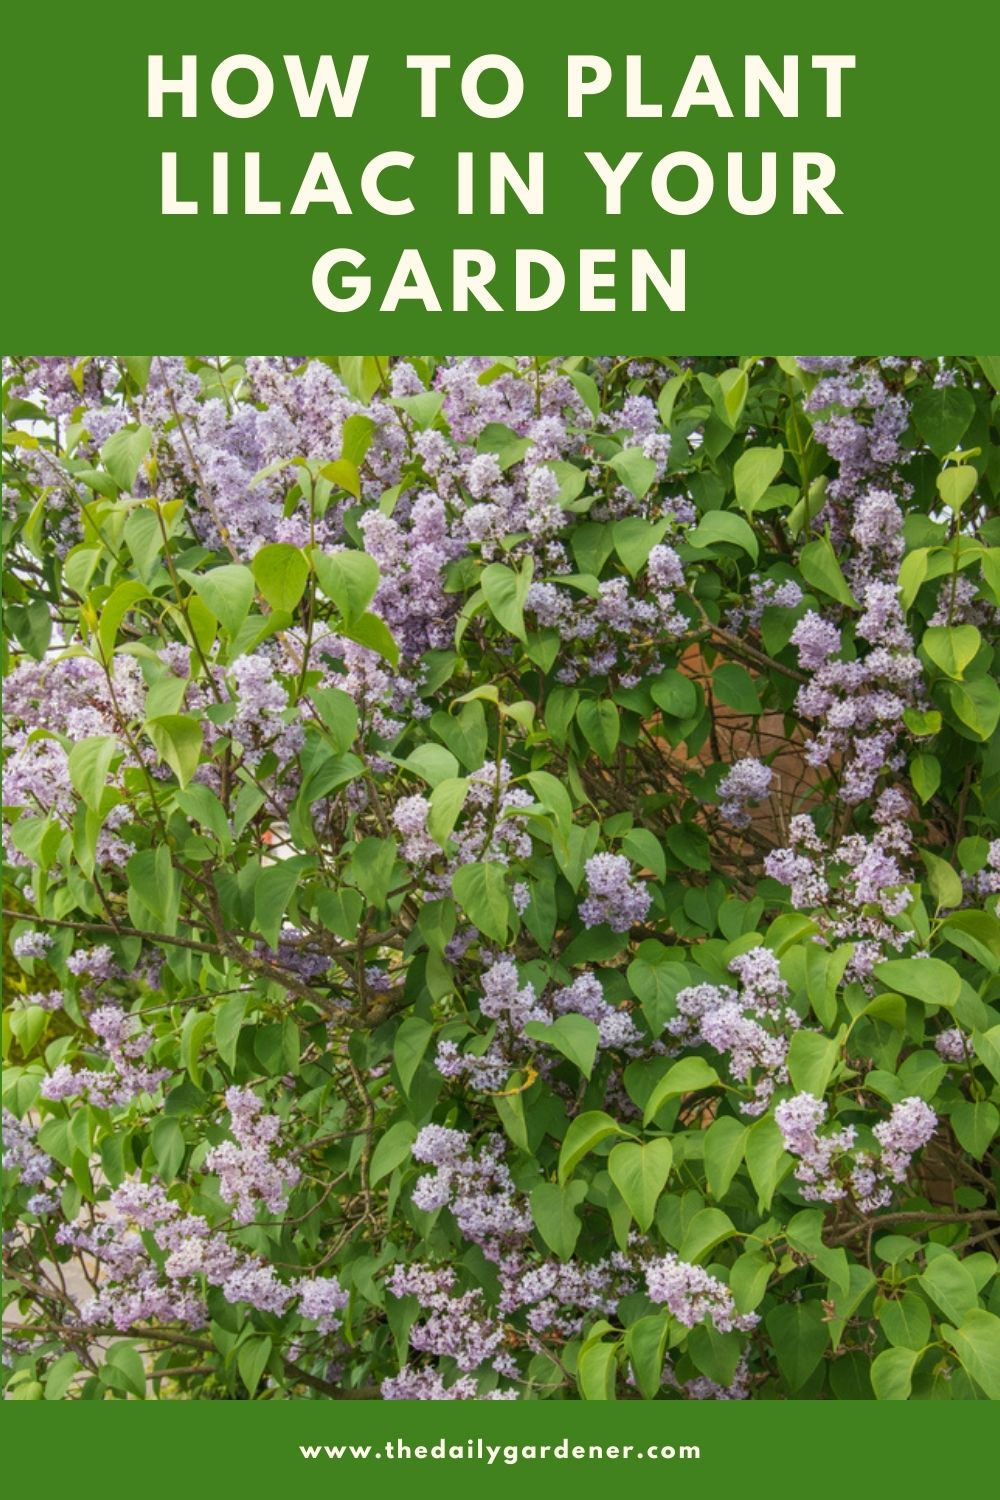 How to Plant Lilac in Your Garden (Tricks to Care!) 2